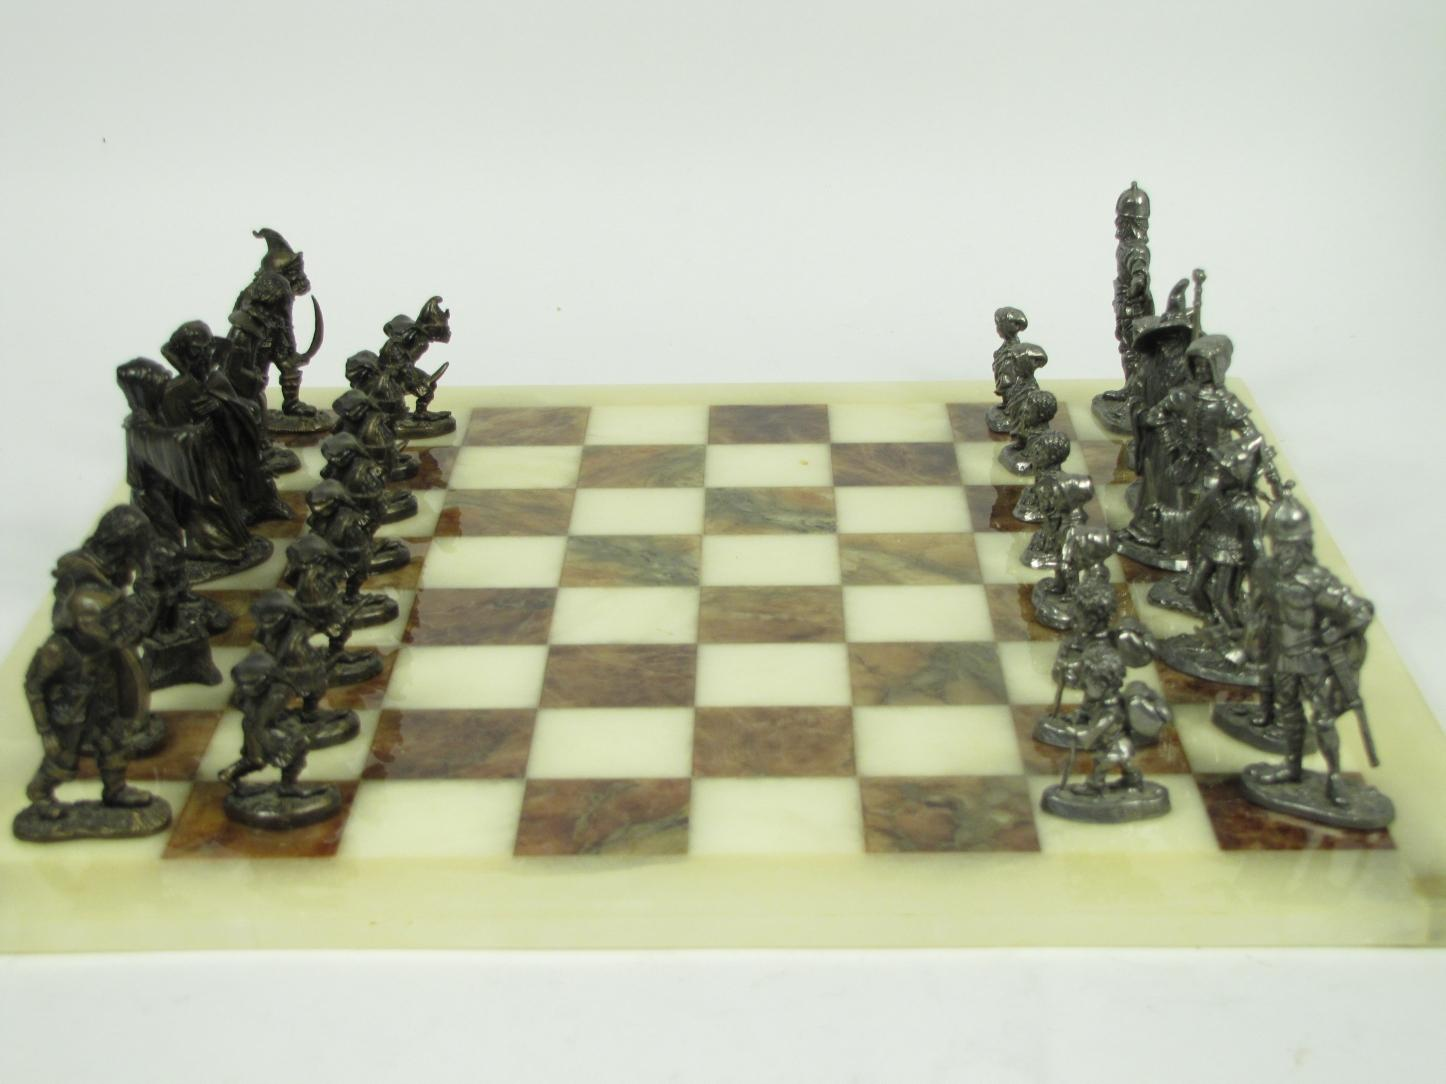 Lord of the rings metal figurines chess set marble board hobbit lotr collectible ebay - Collectible chess sets ...